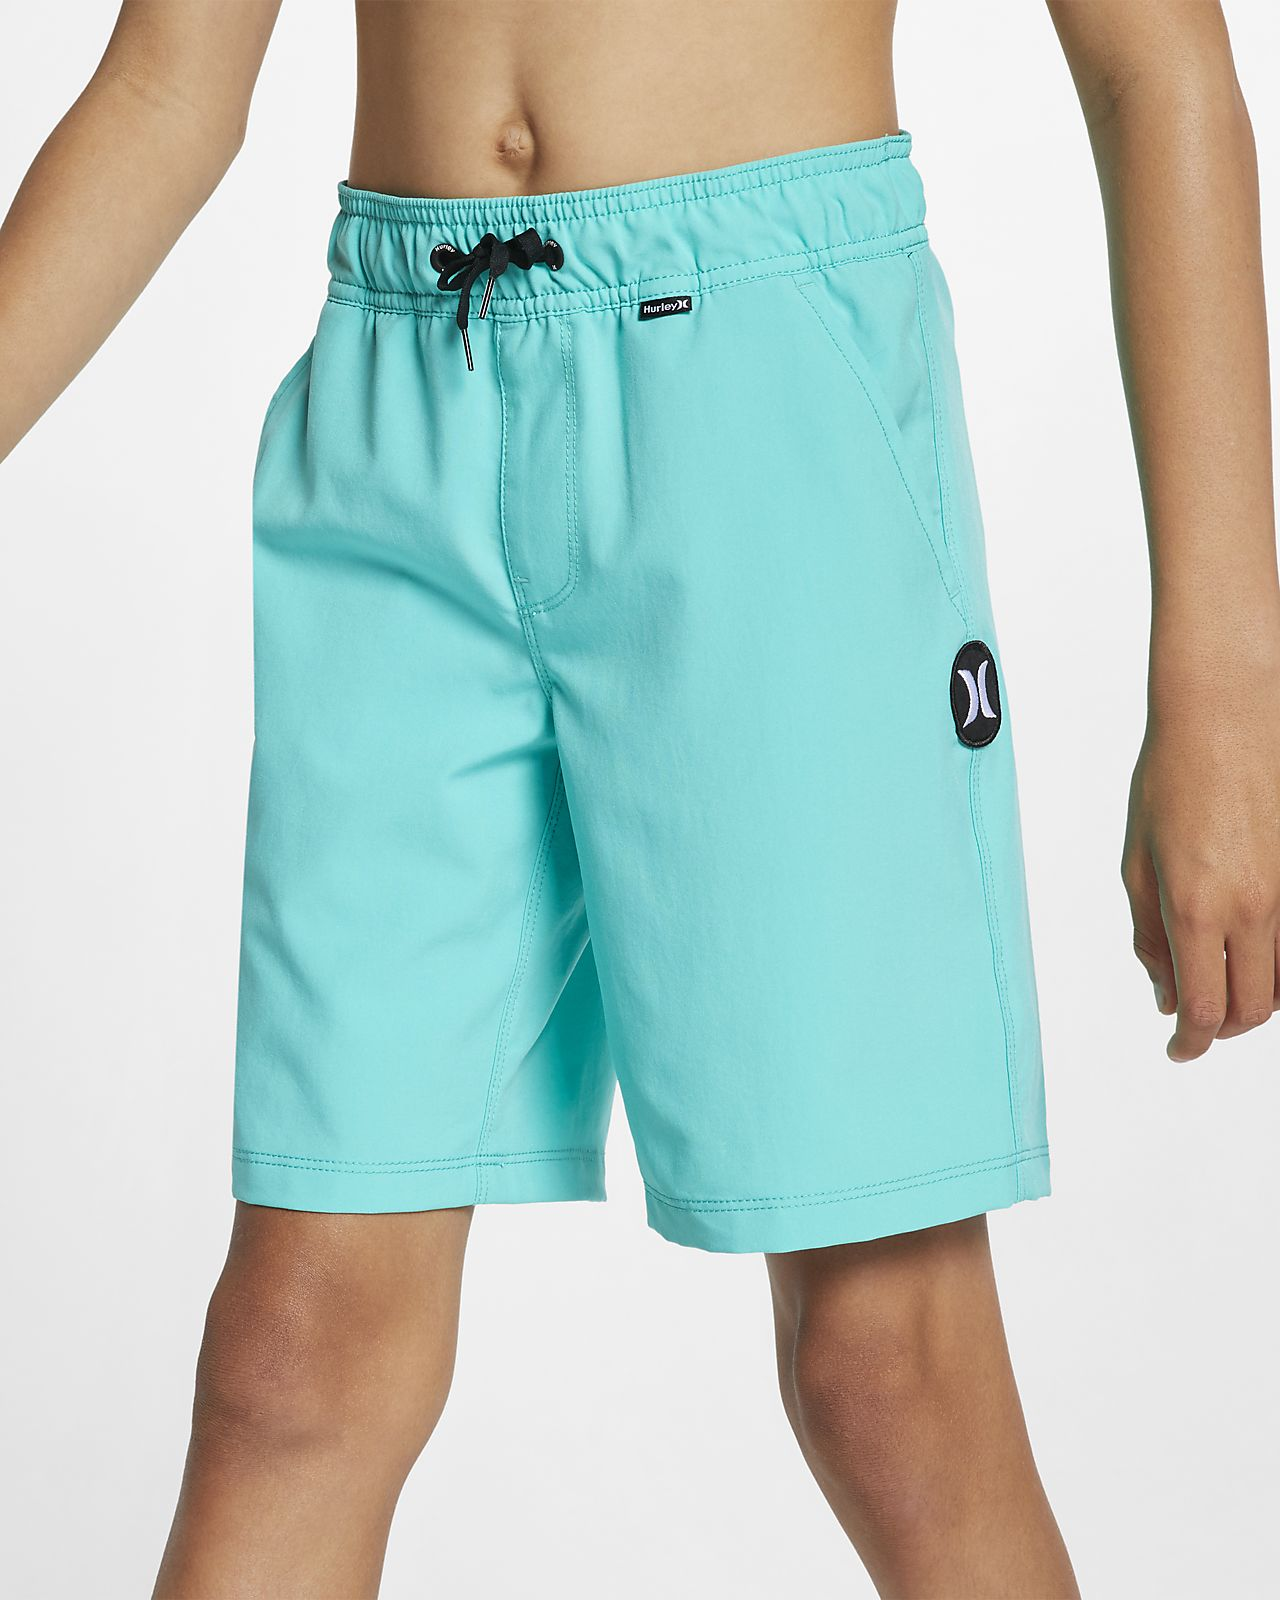 Hurley One and Only surfeshorts til gutt (41 cm)